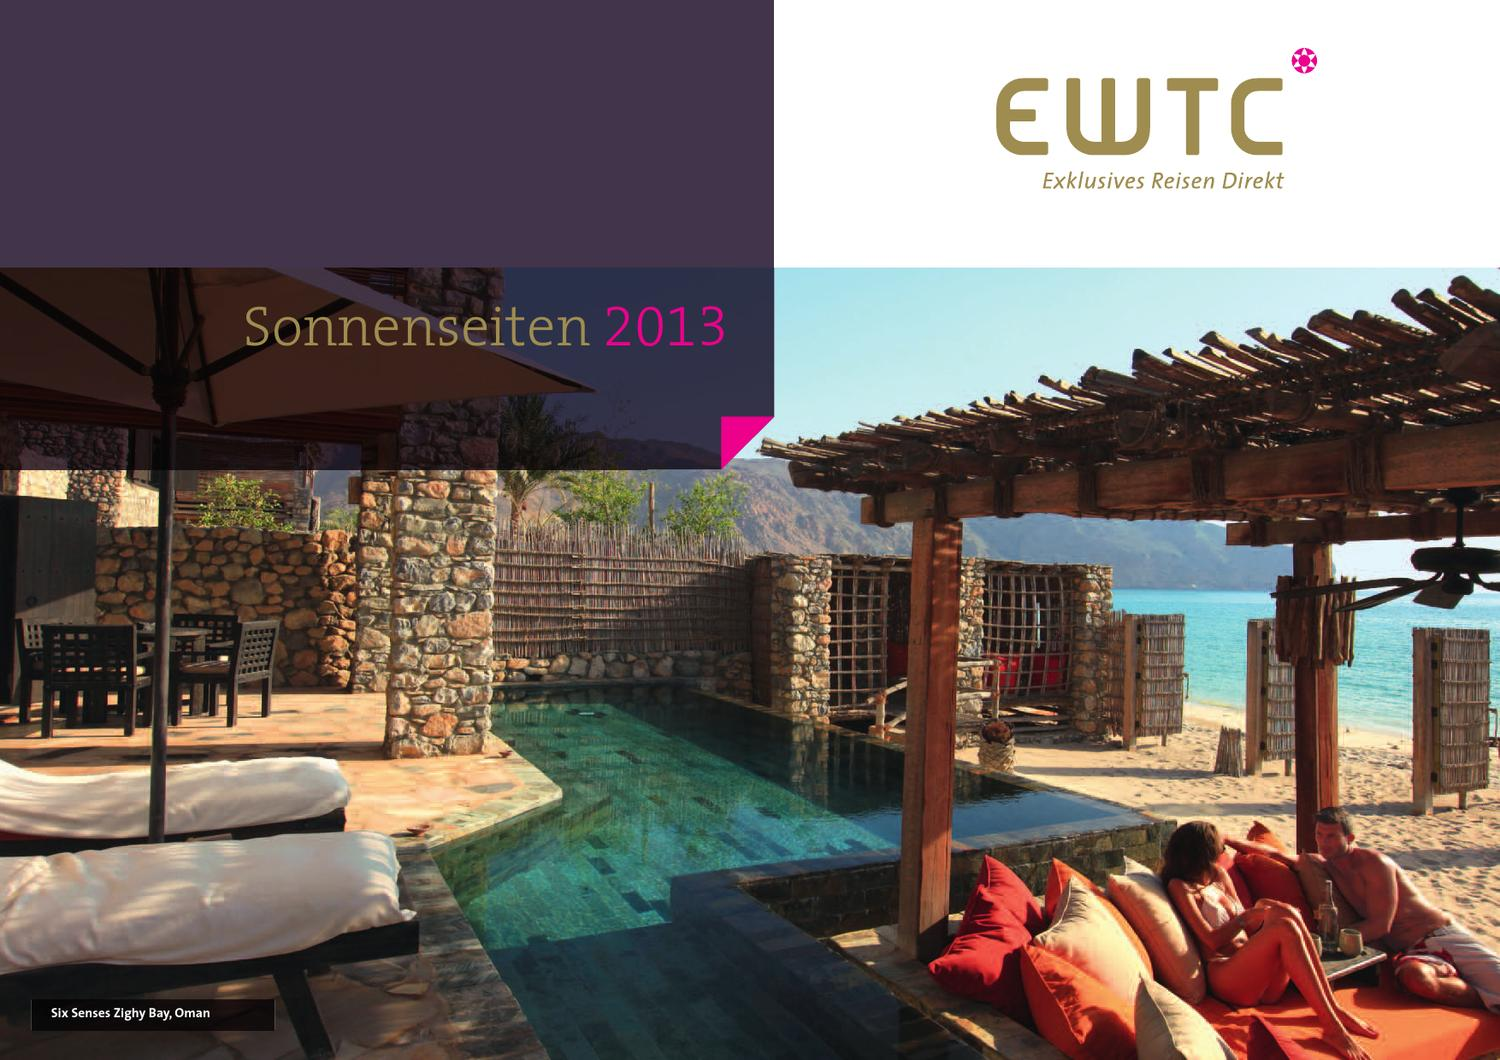 terrasse im asiatischen stil gestalten bringen sie ein fernostliches flair ihren ausenbereich, ewtc katalog 2013 by ewtc - emirates world travel cologne - issuu, Innenarchitektur